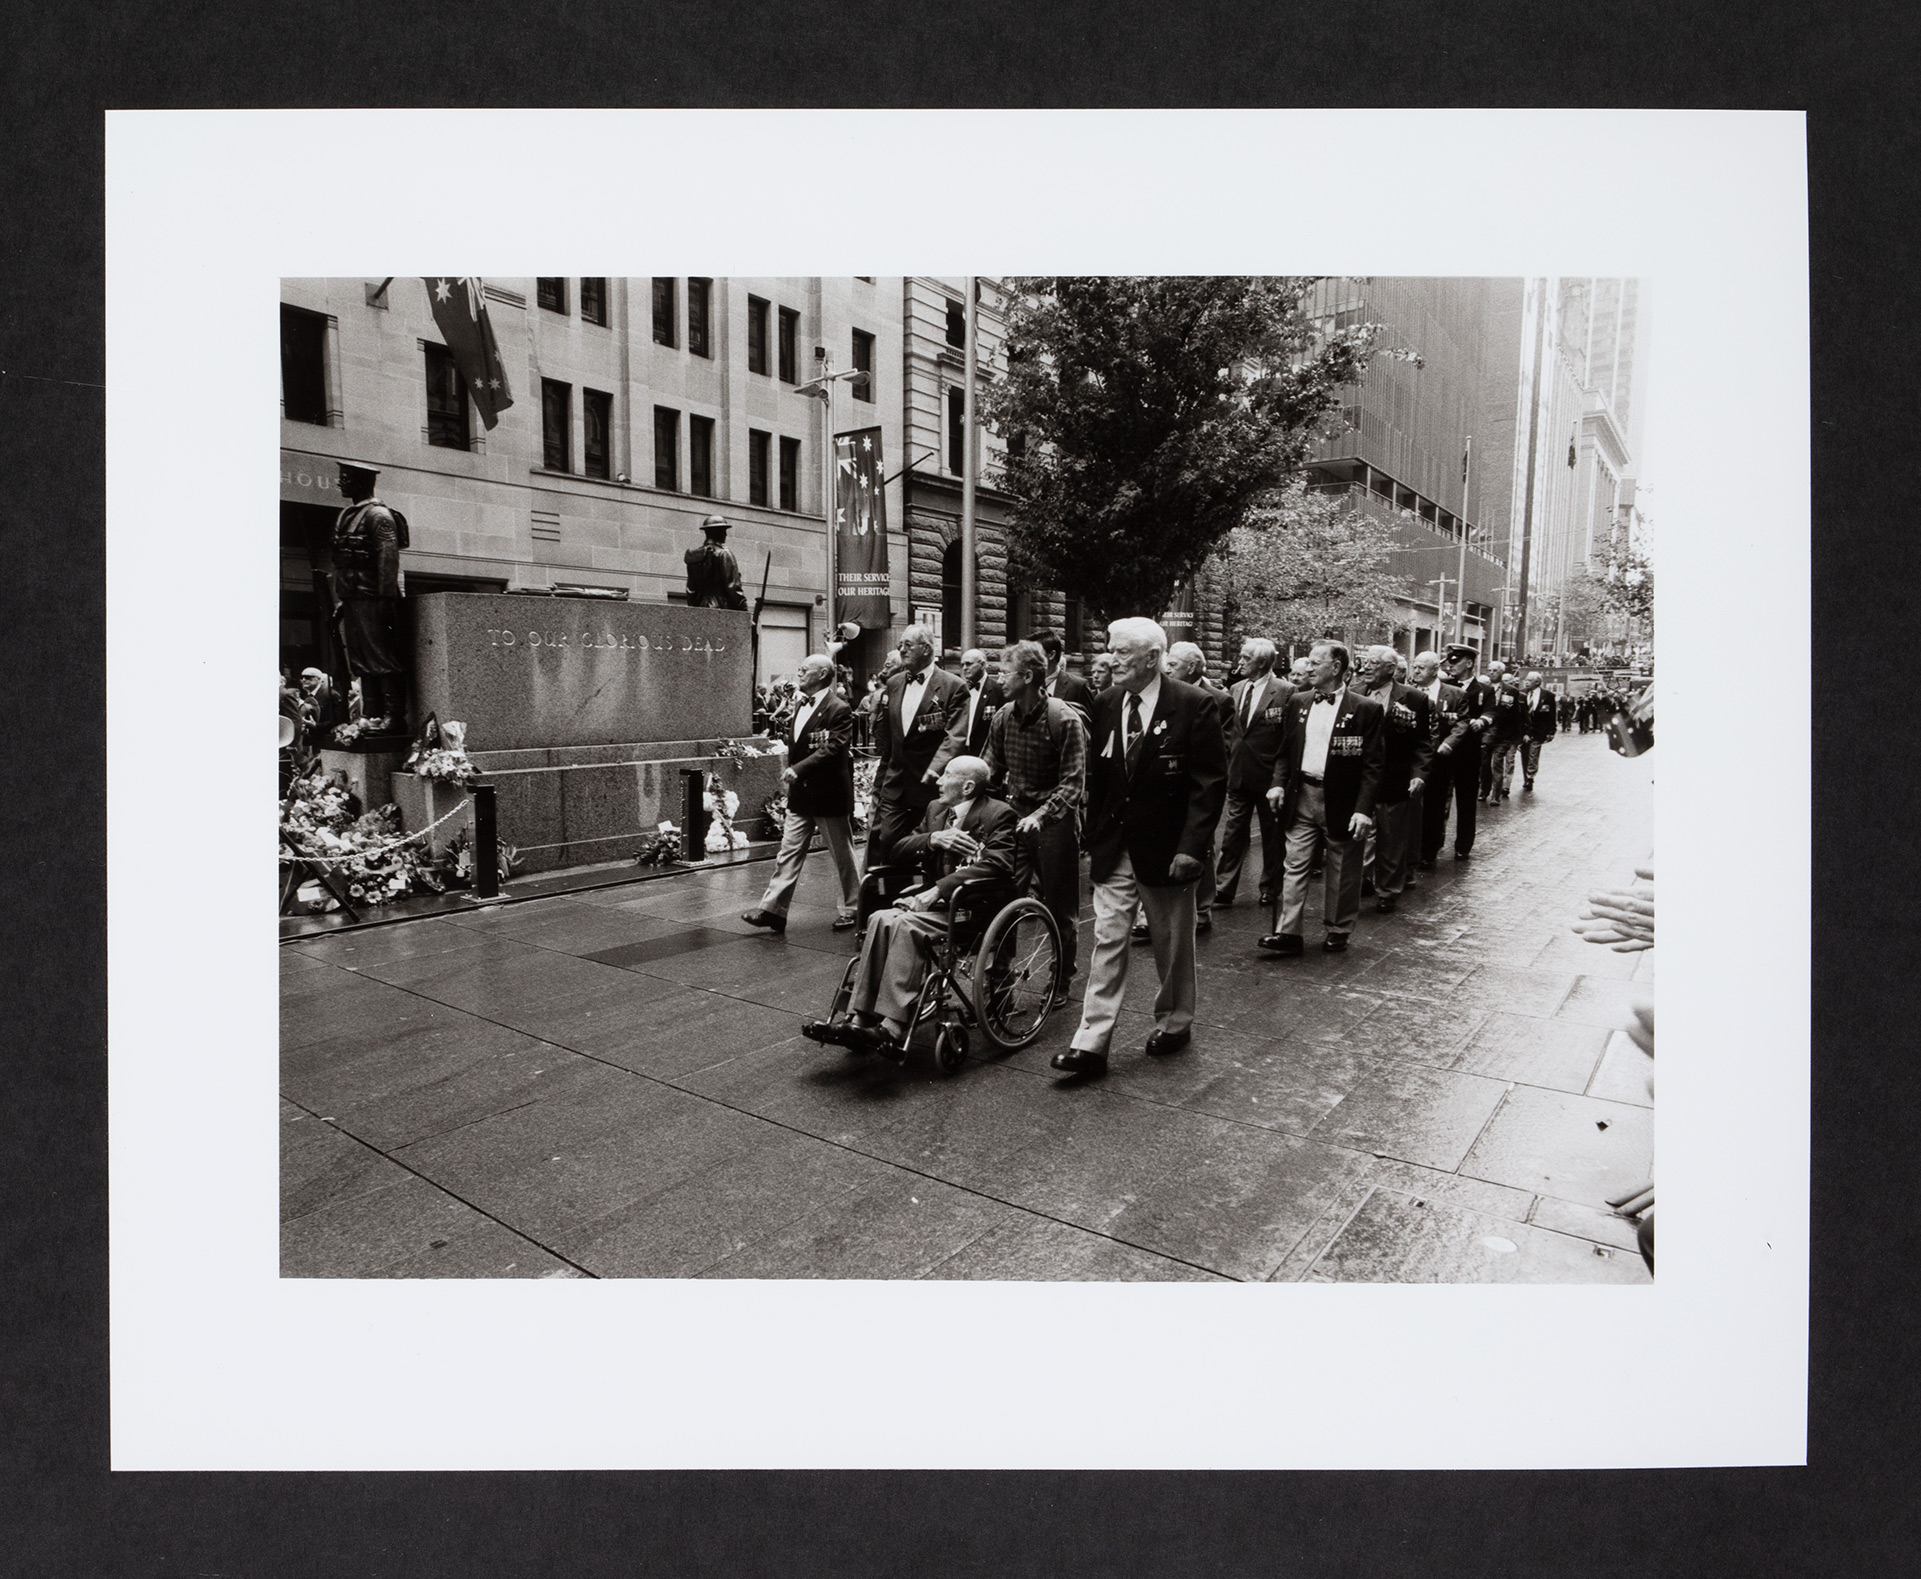 A marching contingent of veterans, one in a wheelchair, past a war memorial.